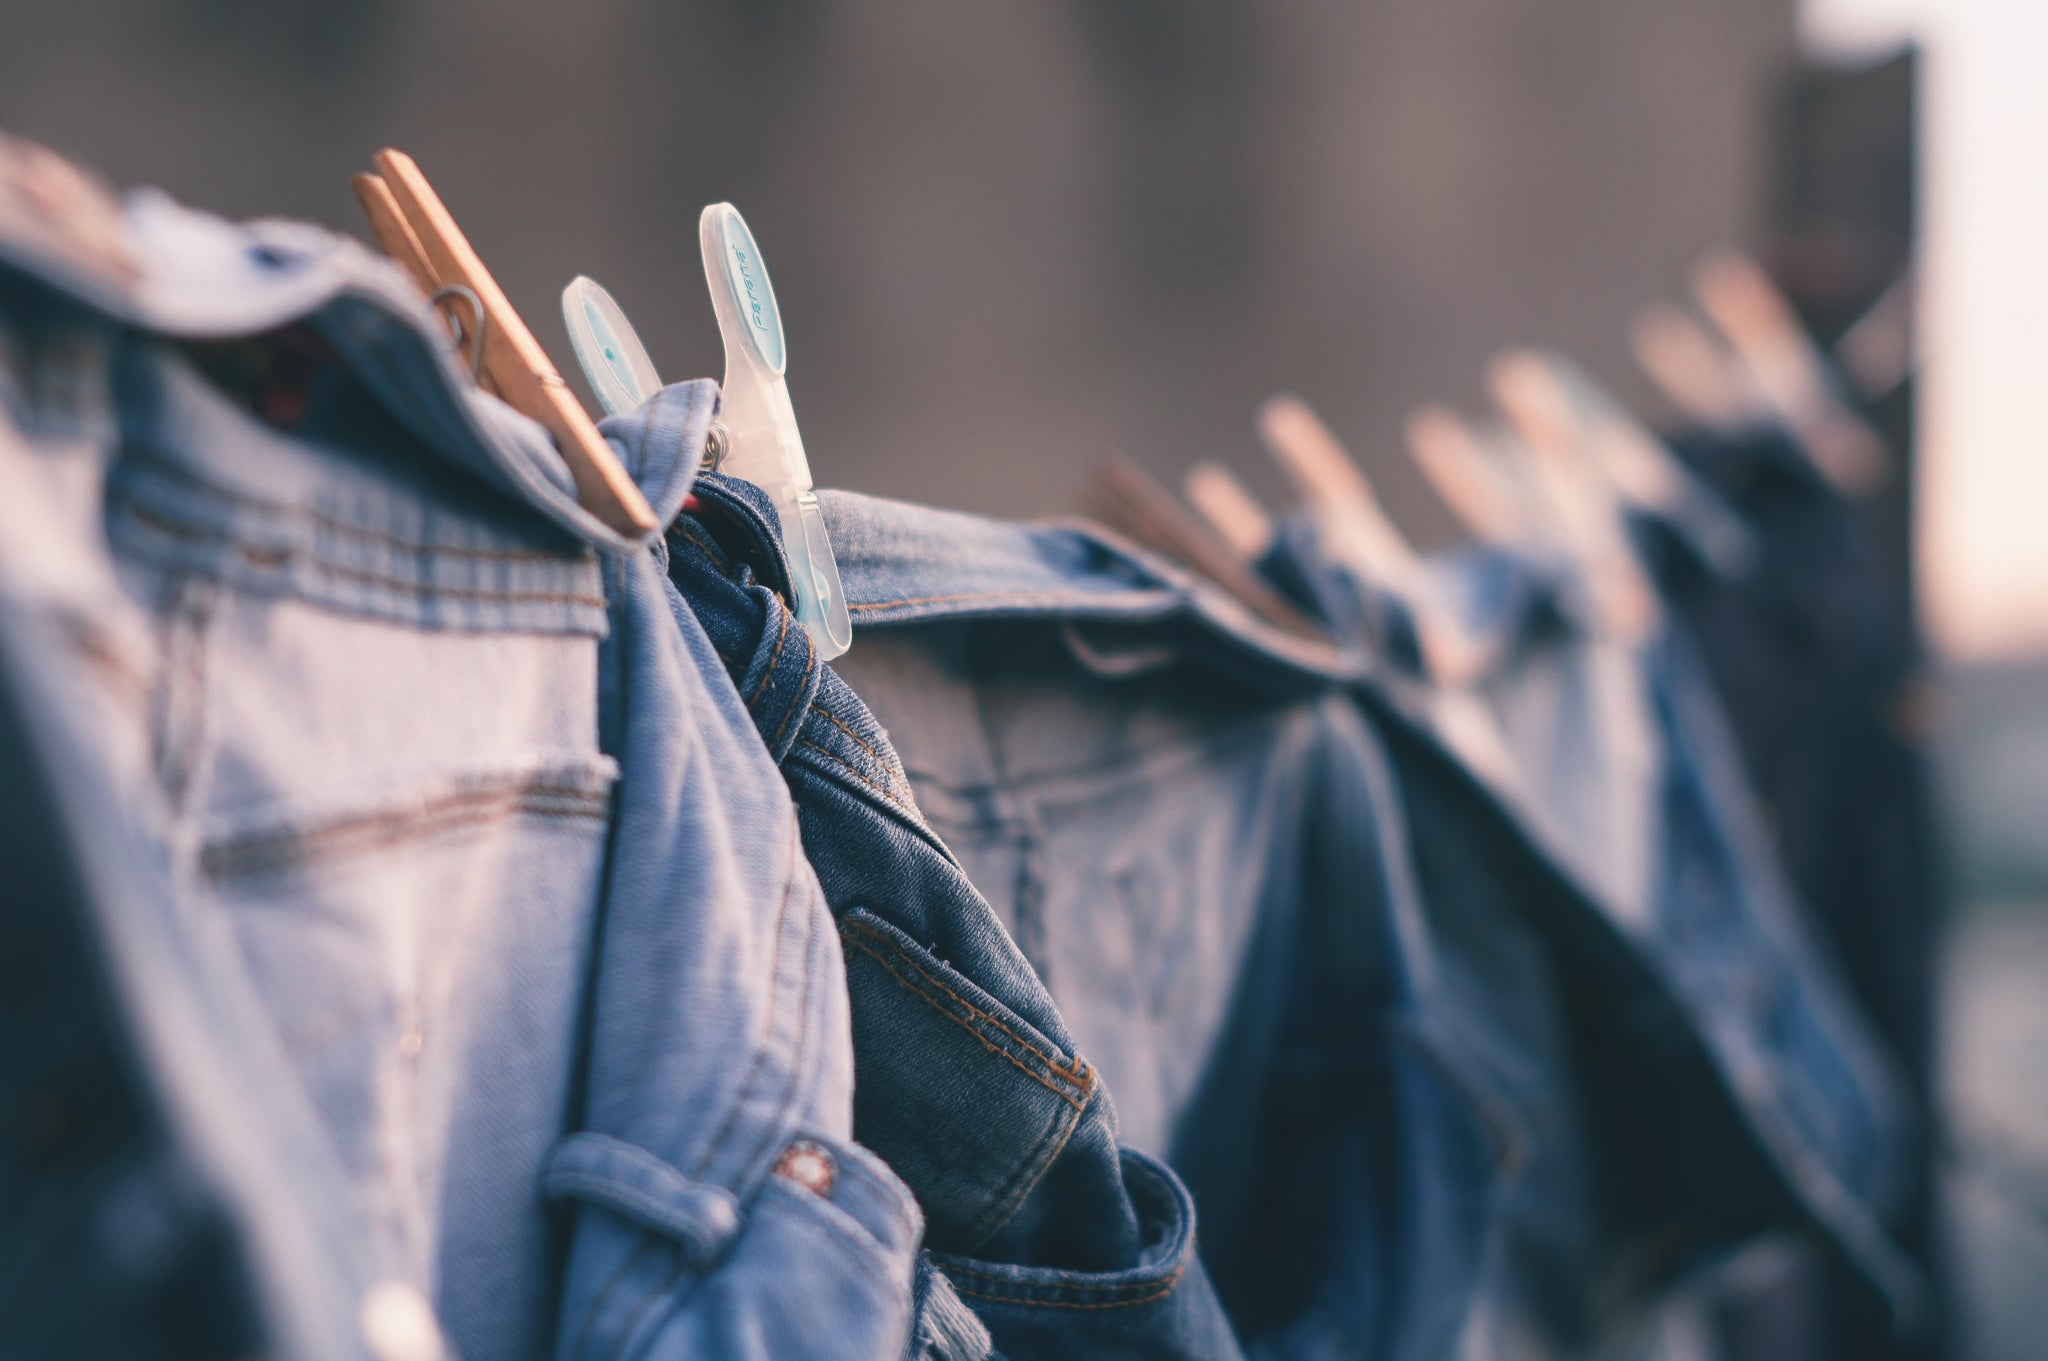 Line drying is better for the planet and for your clothing